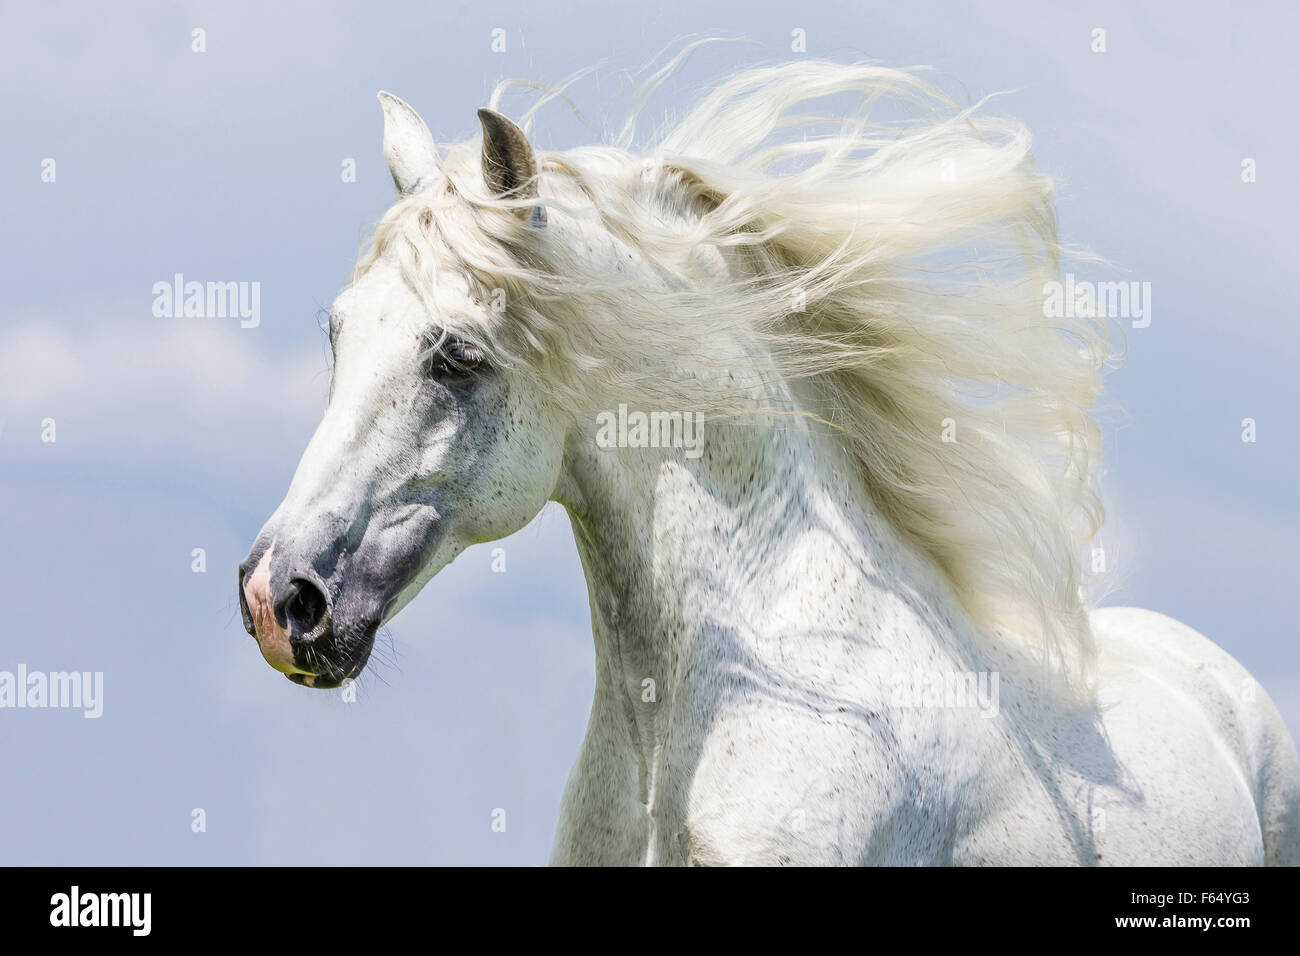 Pure Spanish Horse, Andalusian. Portrait of gray stallion with mane flowing. Germany - Stock Image